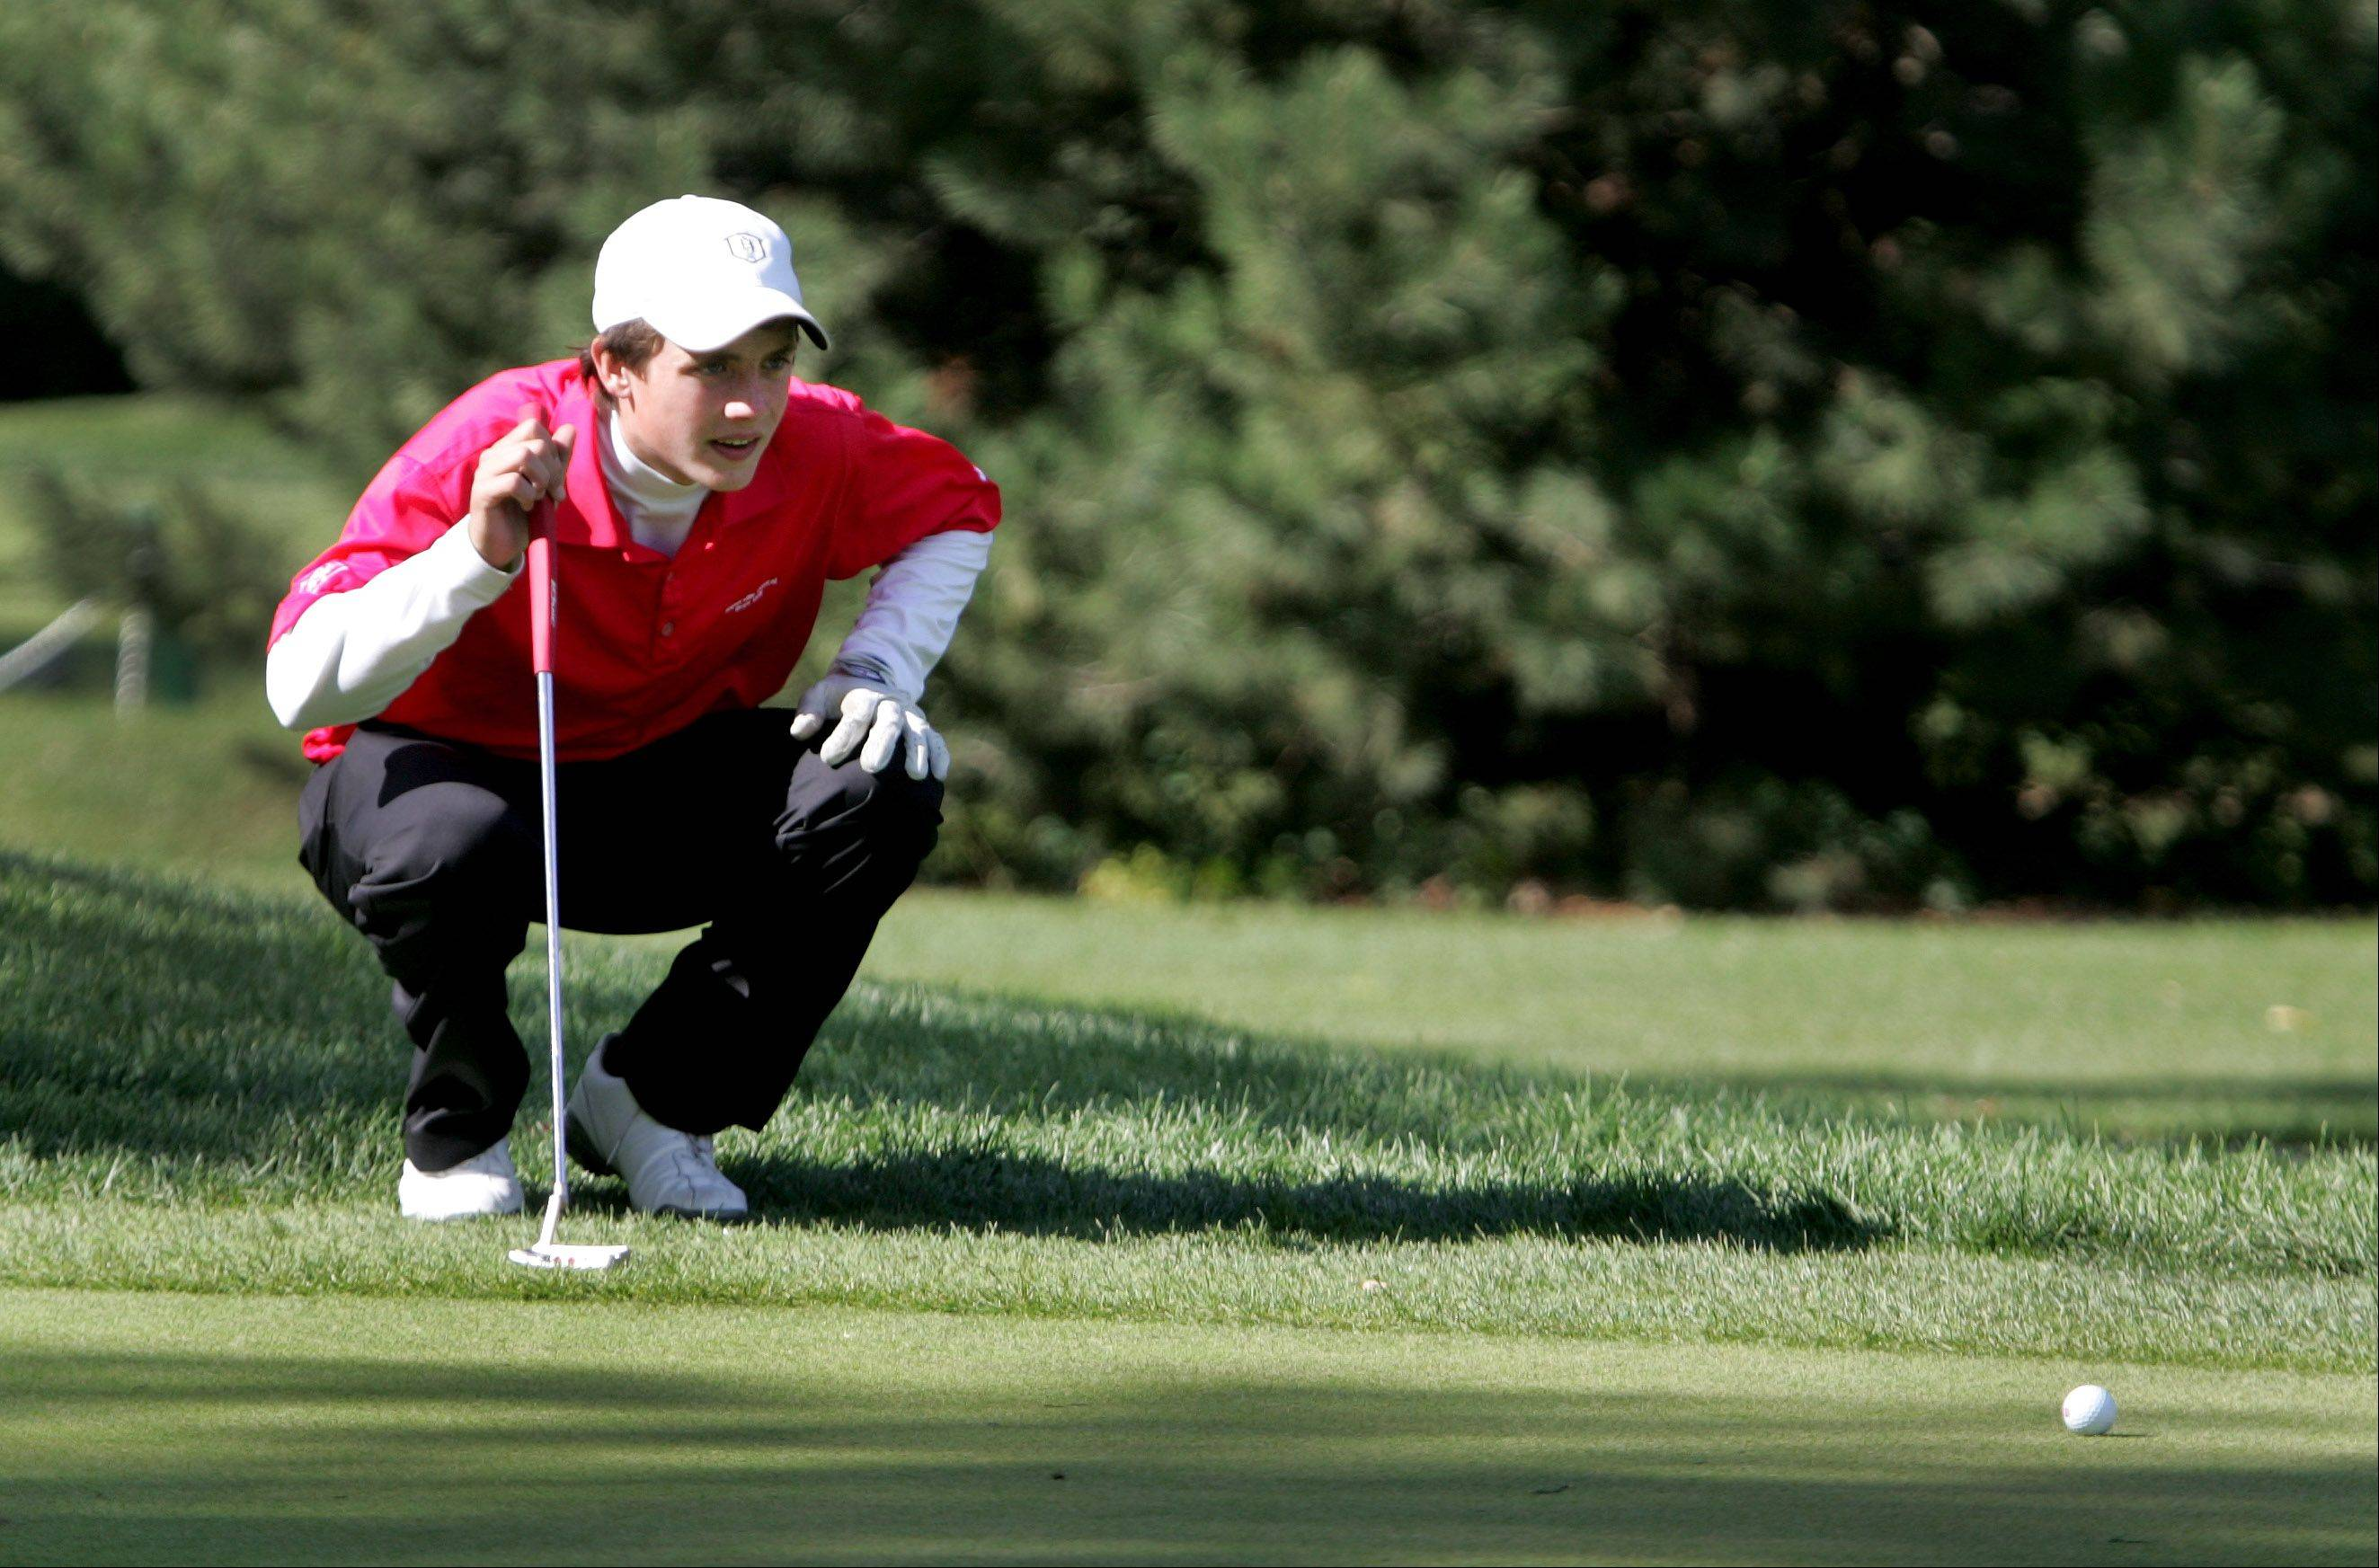 Peter Mandich of Naperville Central lines up a putt on the 6th green during DuPage Valley Conference boys golf at Bartlett Hills Golf course on Thursday.